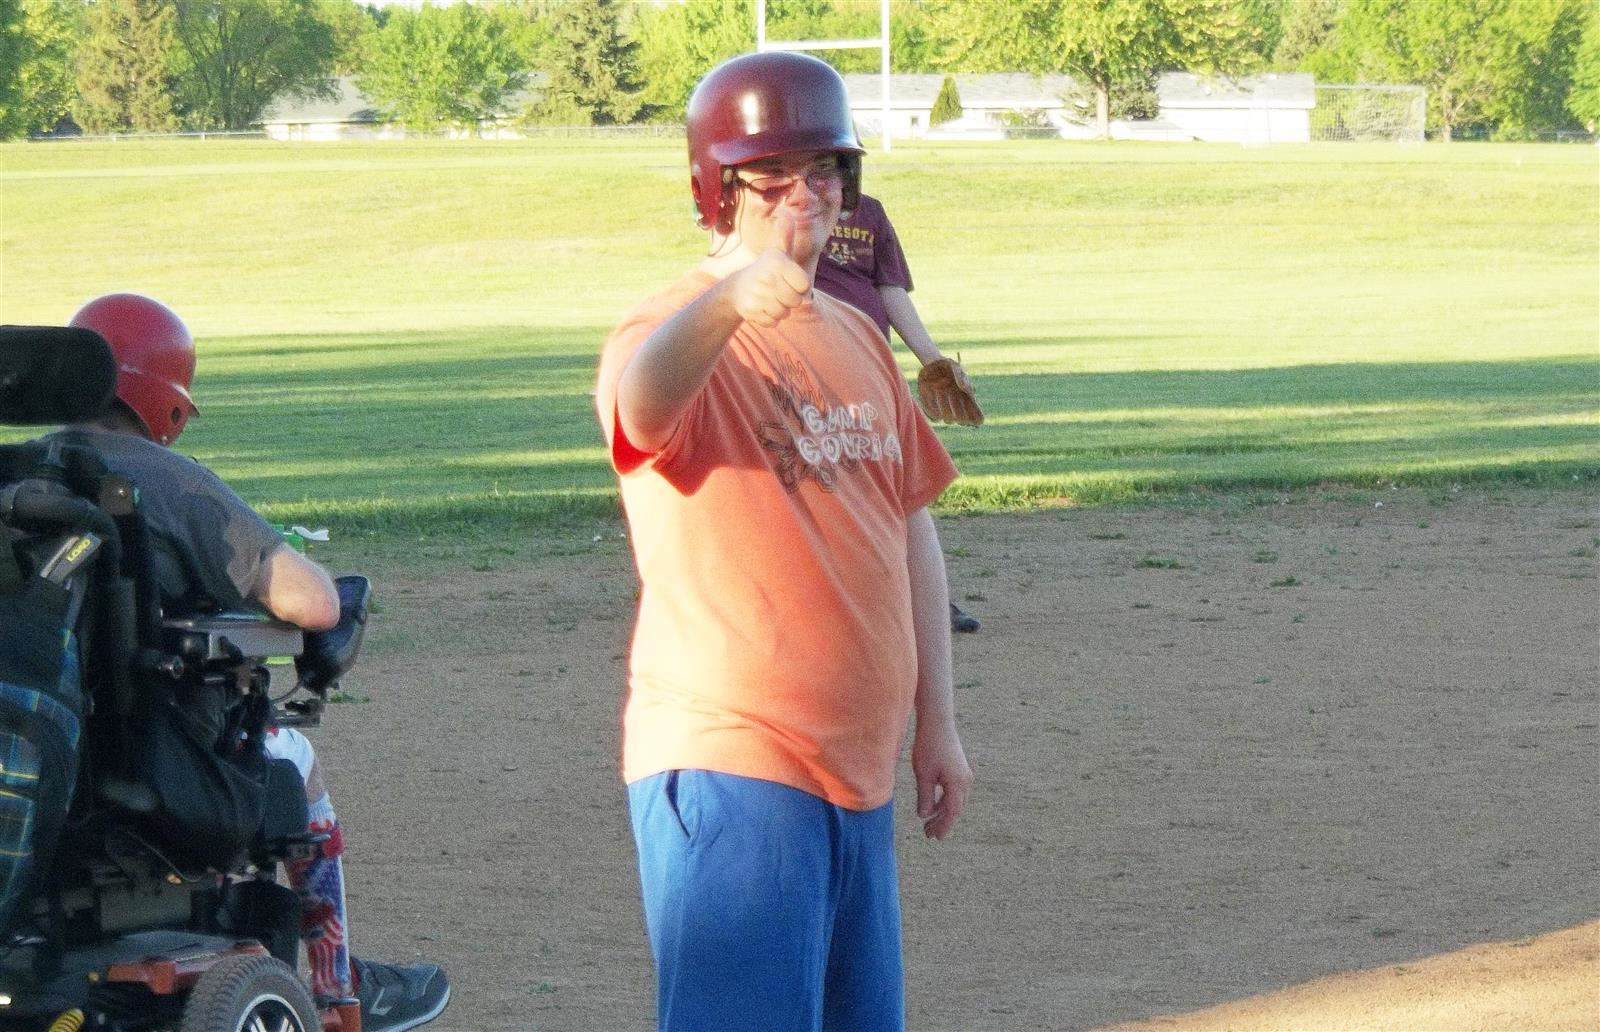 adults with disabilities play on softball field